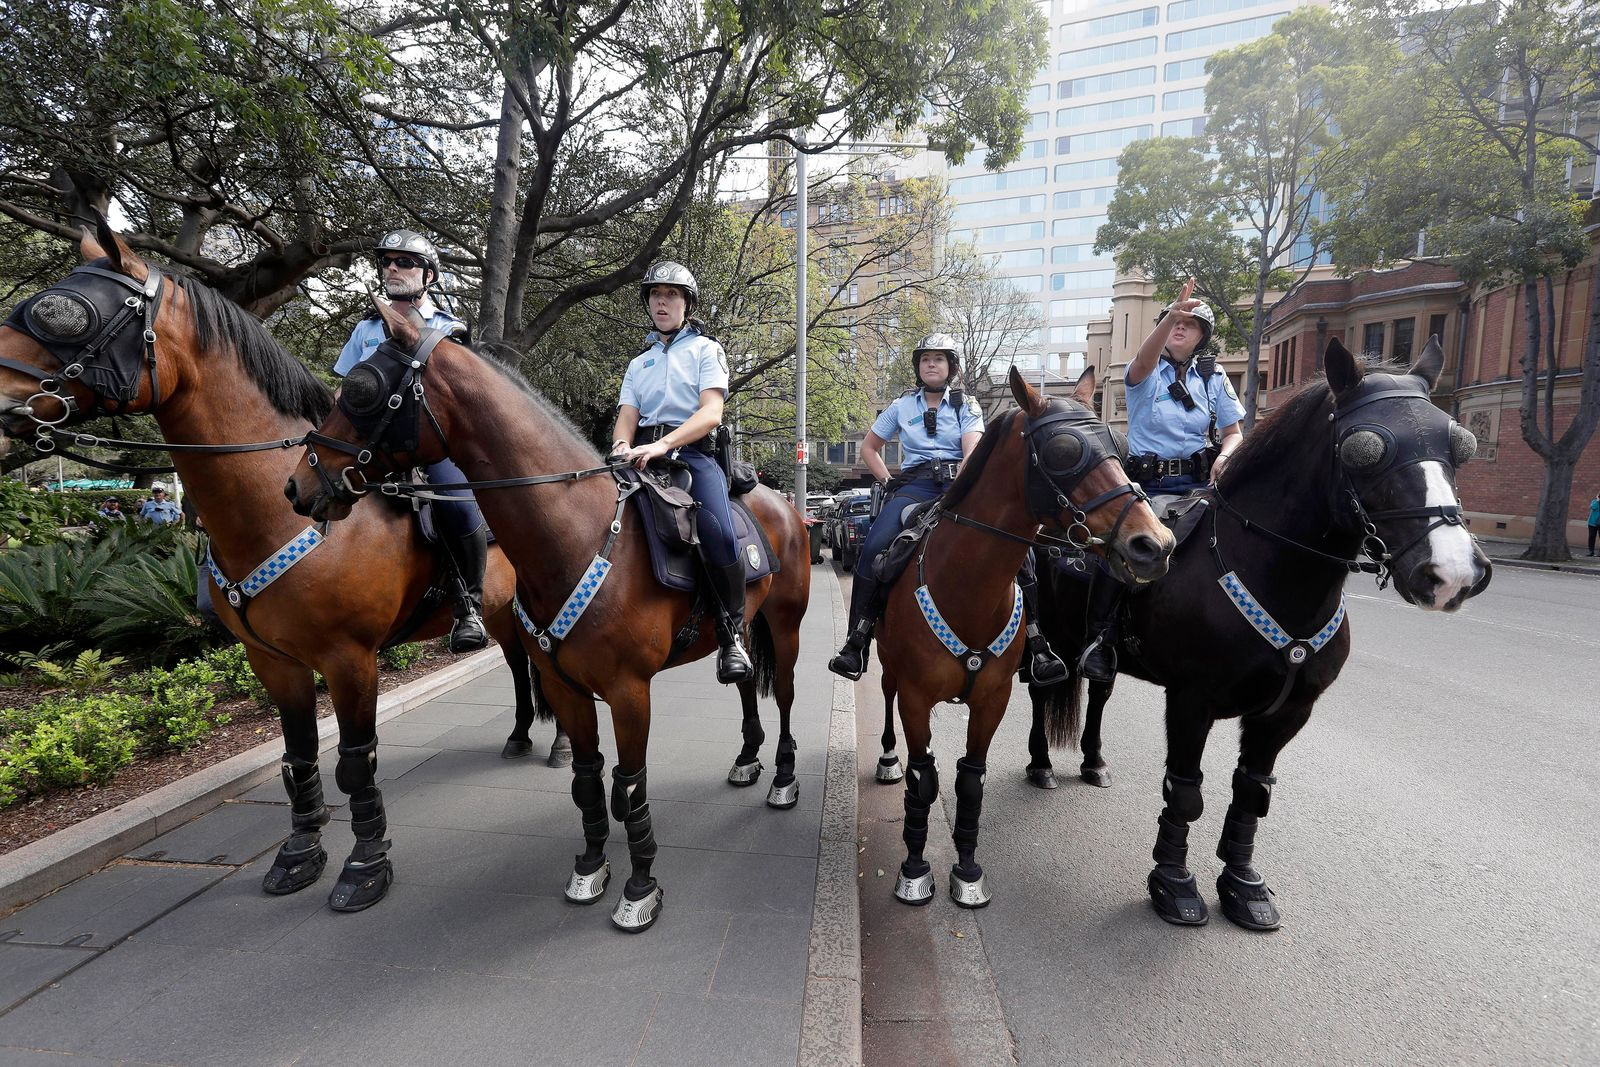 Mounted police block a path as thousands of protestors, many of them school students, attempt to march on the streets in Sydney, Friday, Sept. 20, 2019, calling for action to guard against climate change. (AP Photo/Rick Rycroft)